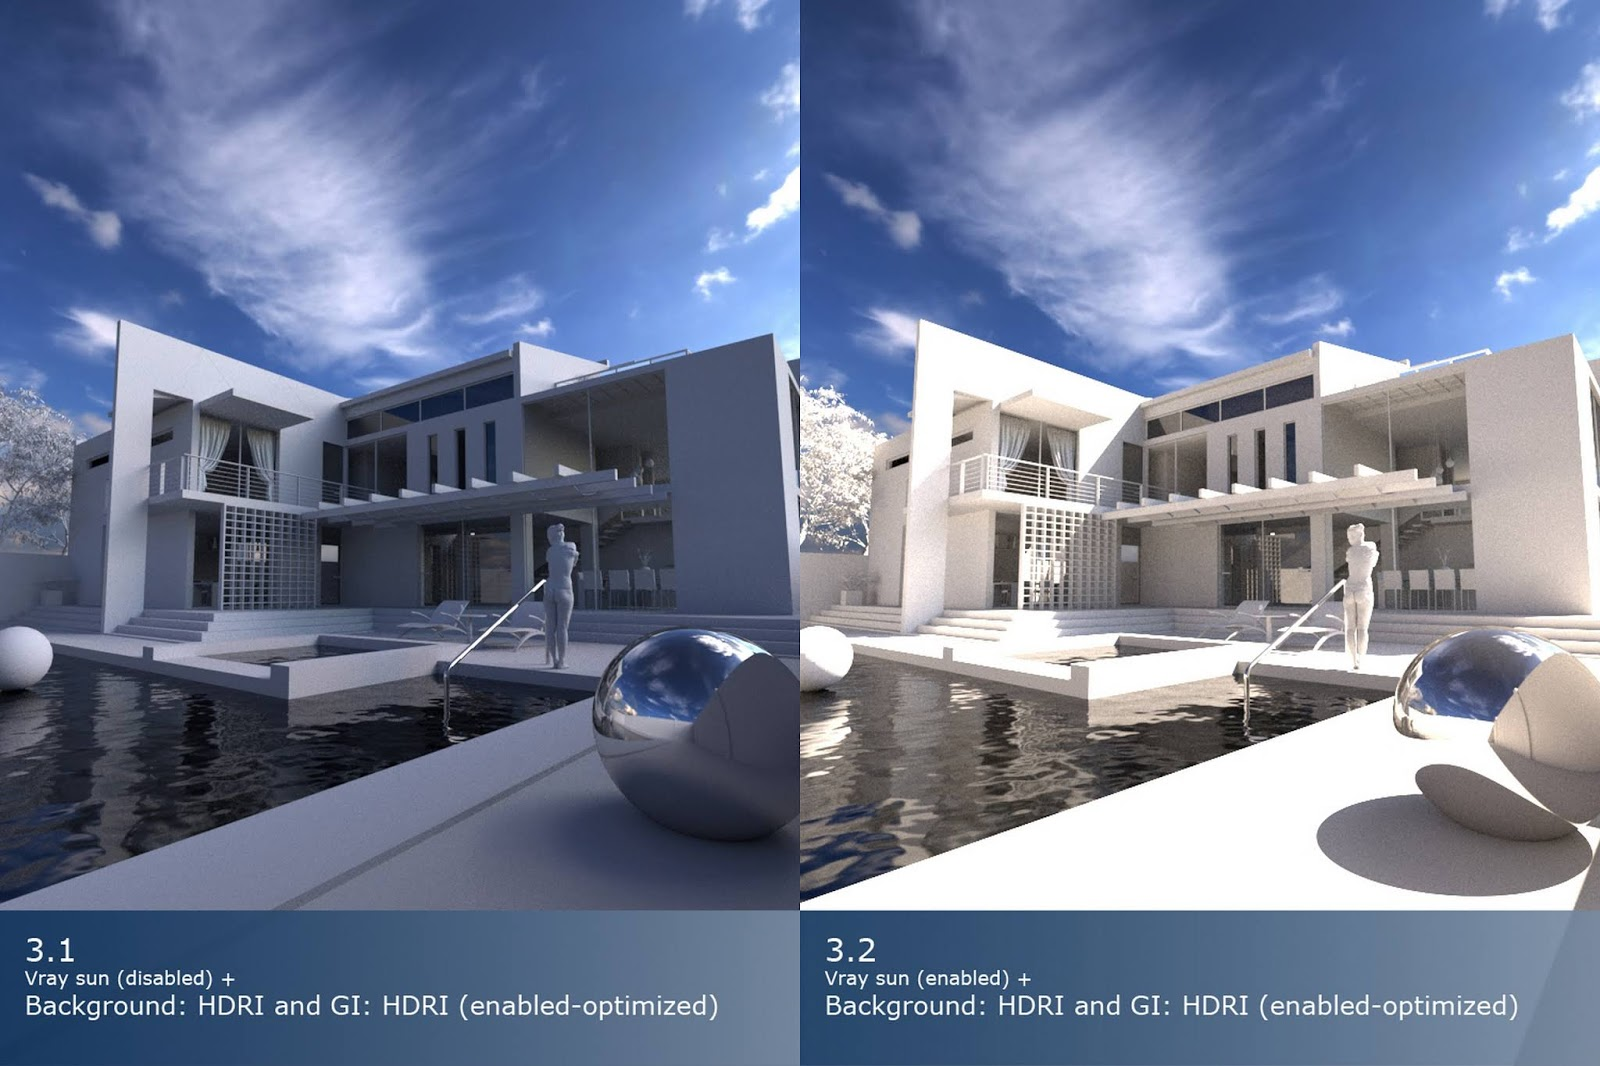 EXTERIOR RENDER Settings (Vray 3 4 for SketchUp)